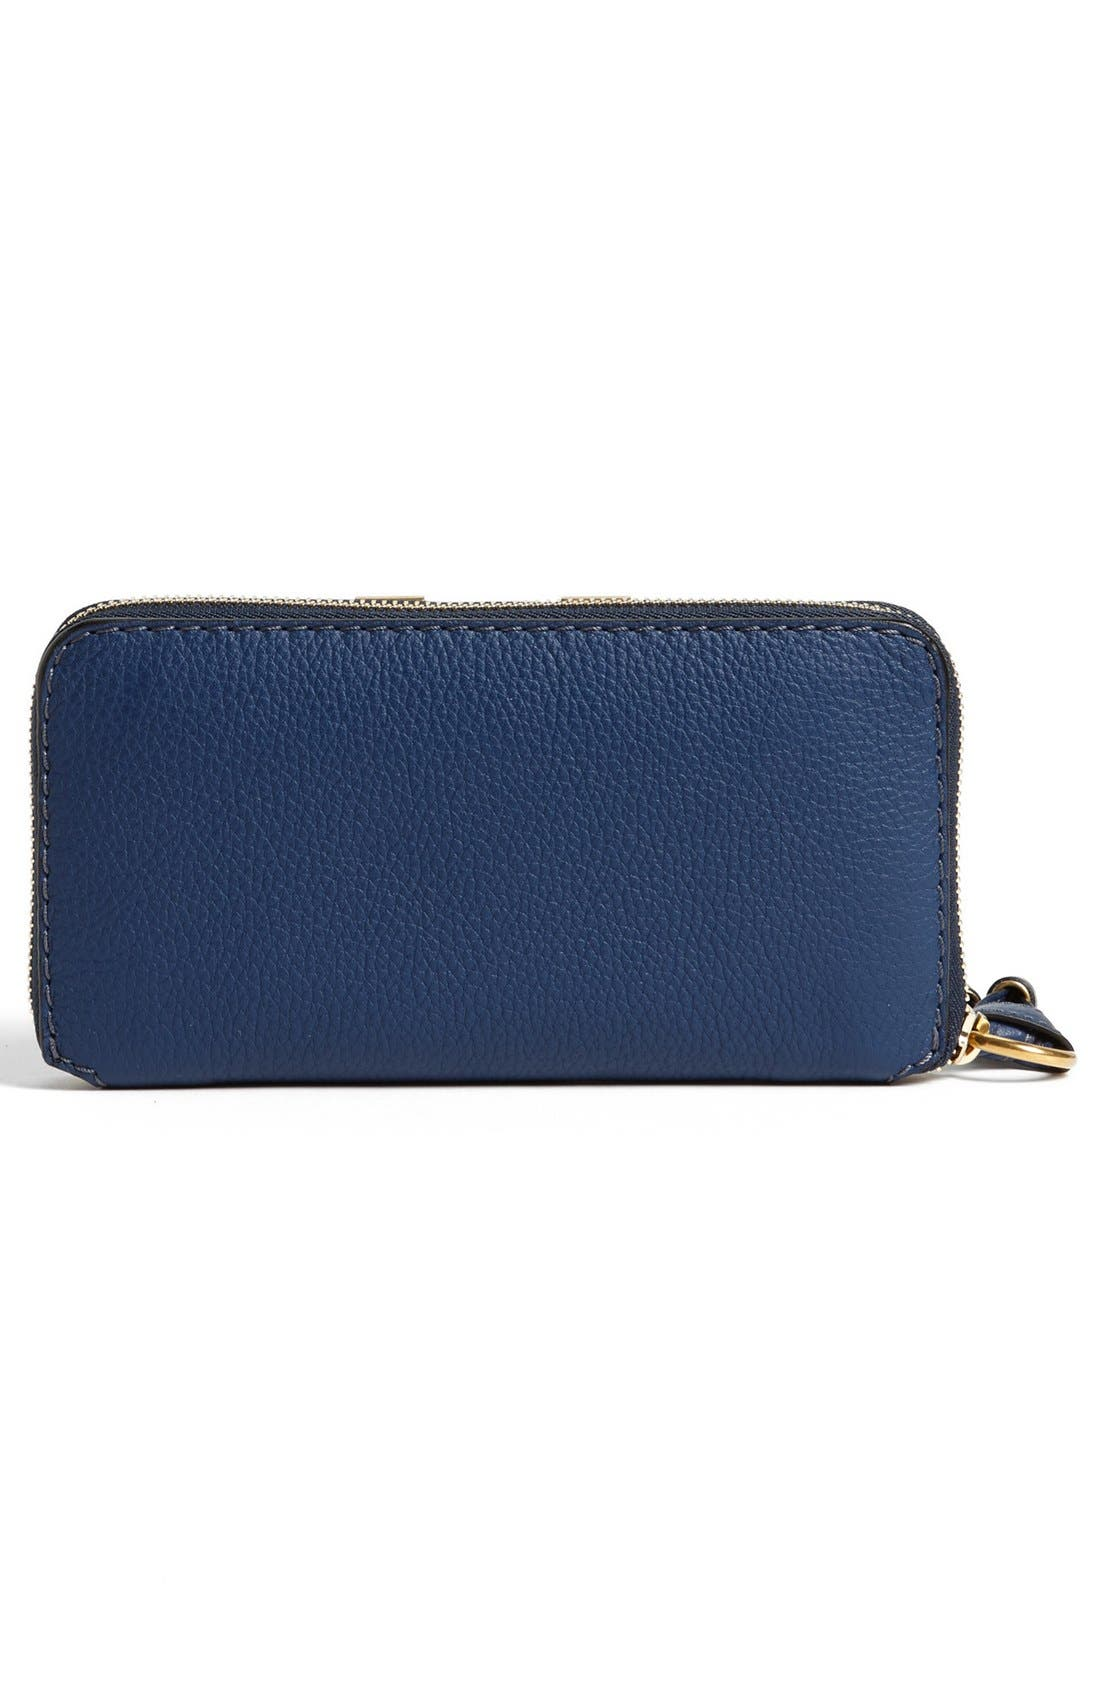 Alternate Image 3  - Chloé 'Marcie - Long' Zip Around Wallet